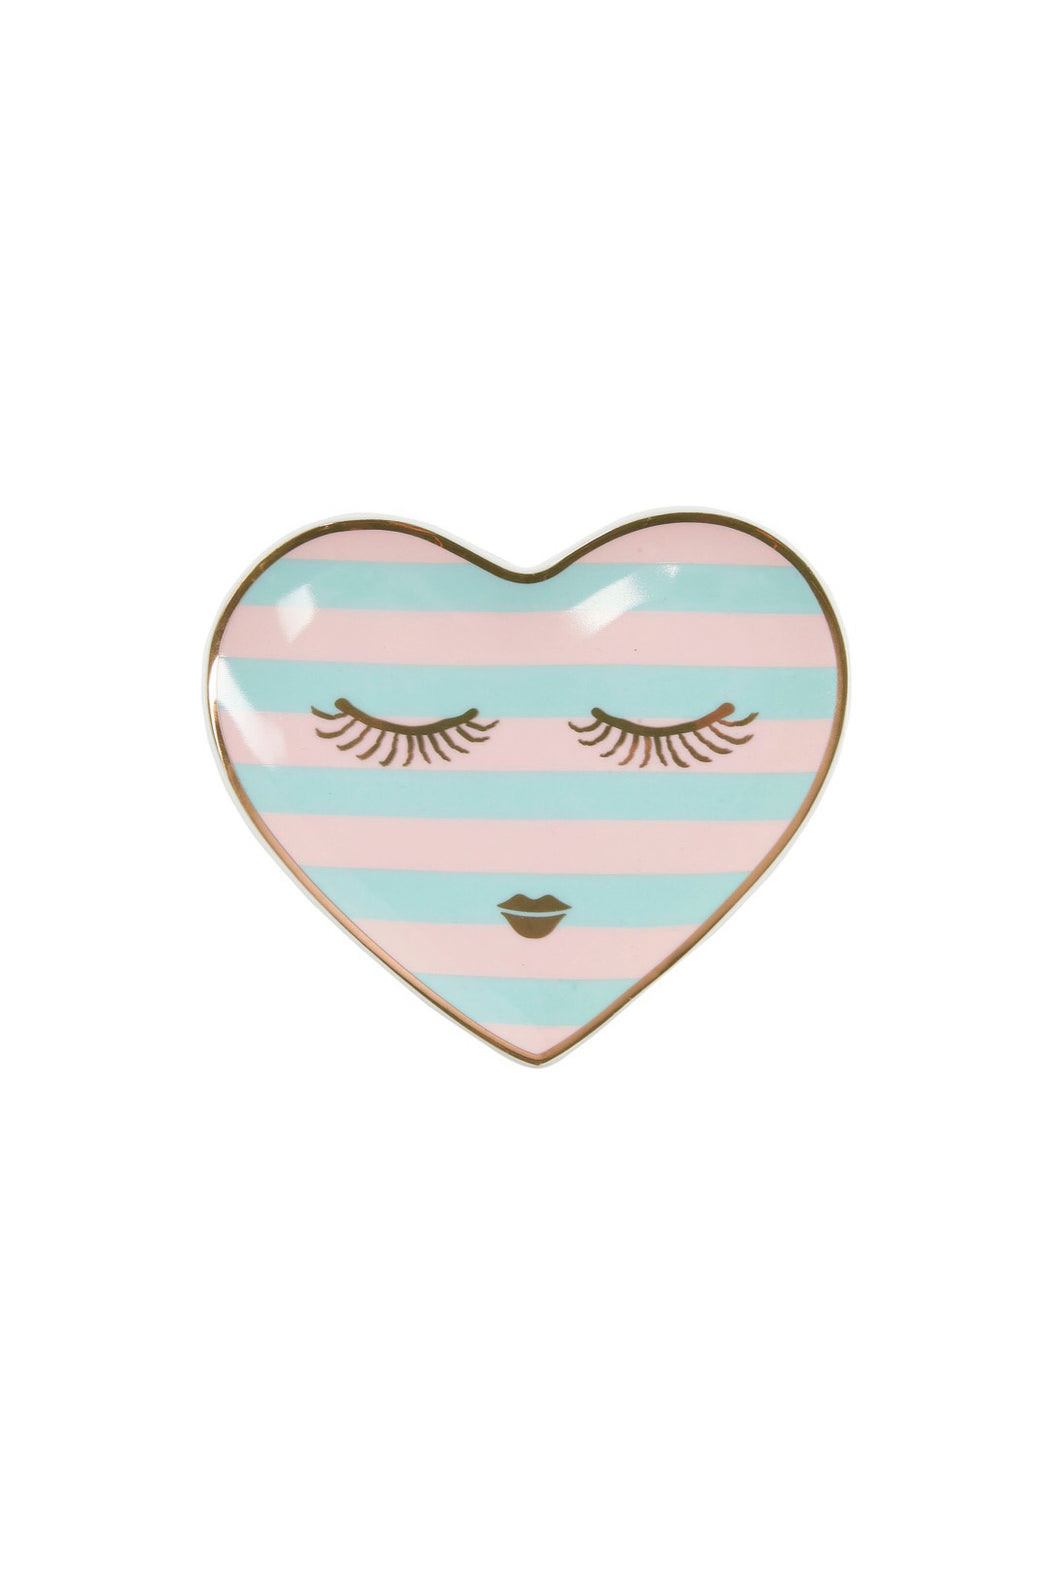 Candy Pretty Closed Eyes Heart Shaped Plate